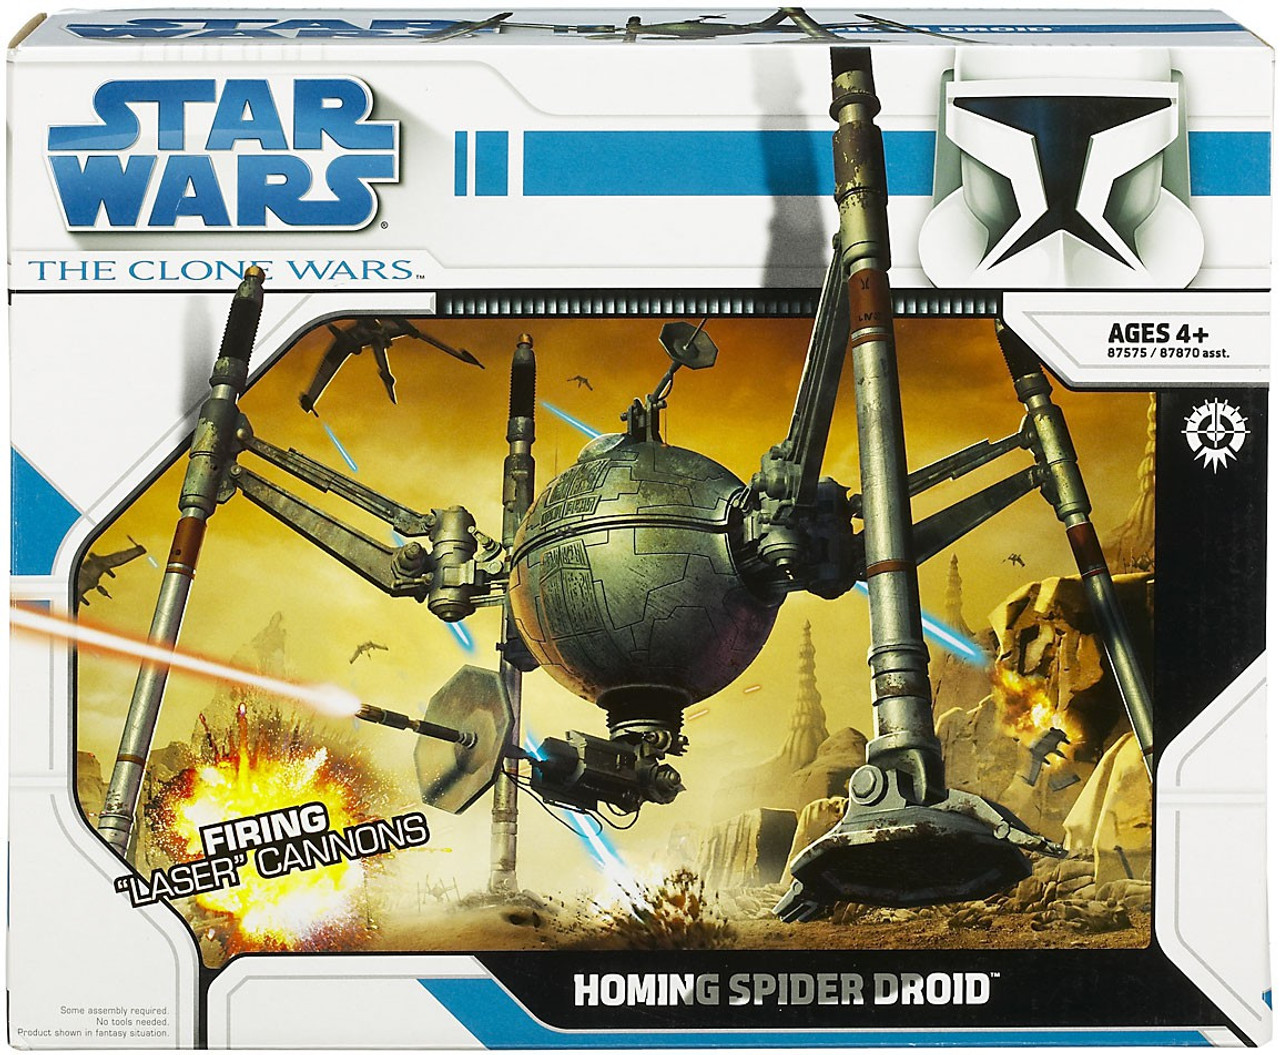 Star Wars The Clone Wars Vehicles 2008 Homing Spider Droid Action Figure Vehicle